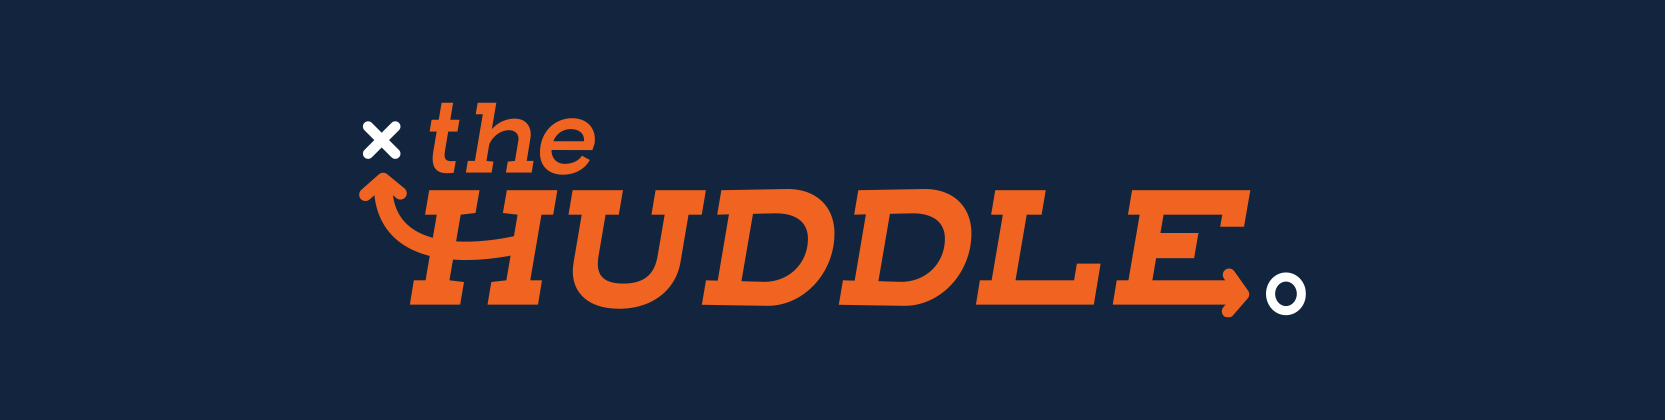 The Huddle Header graphic